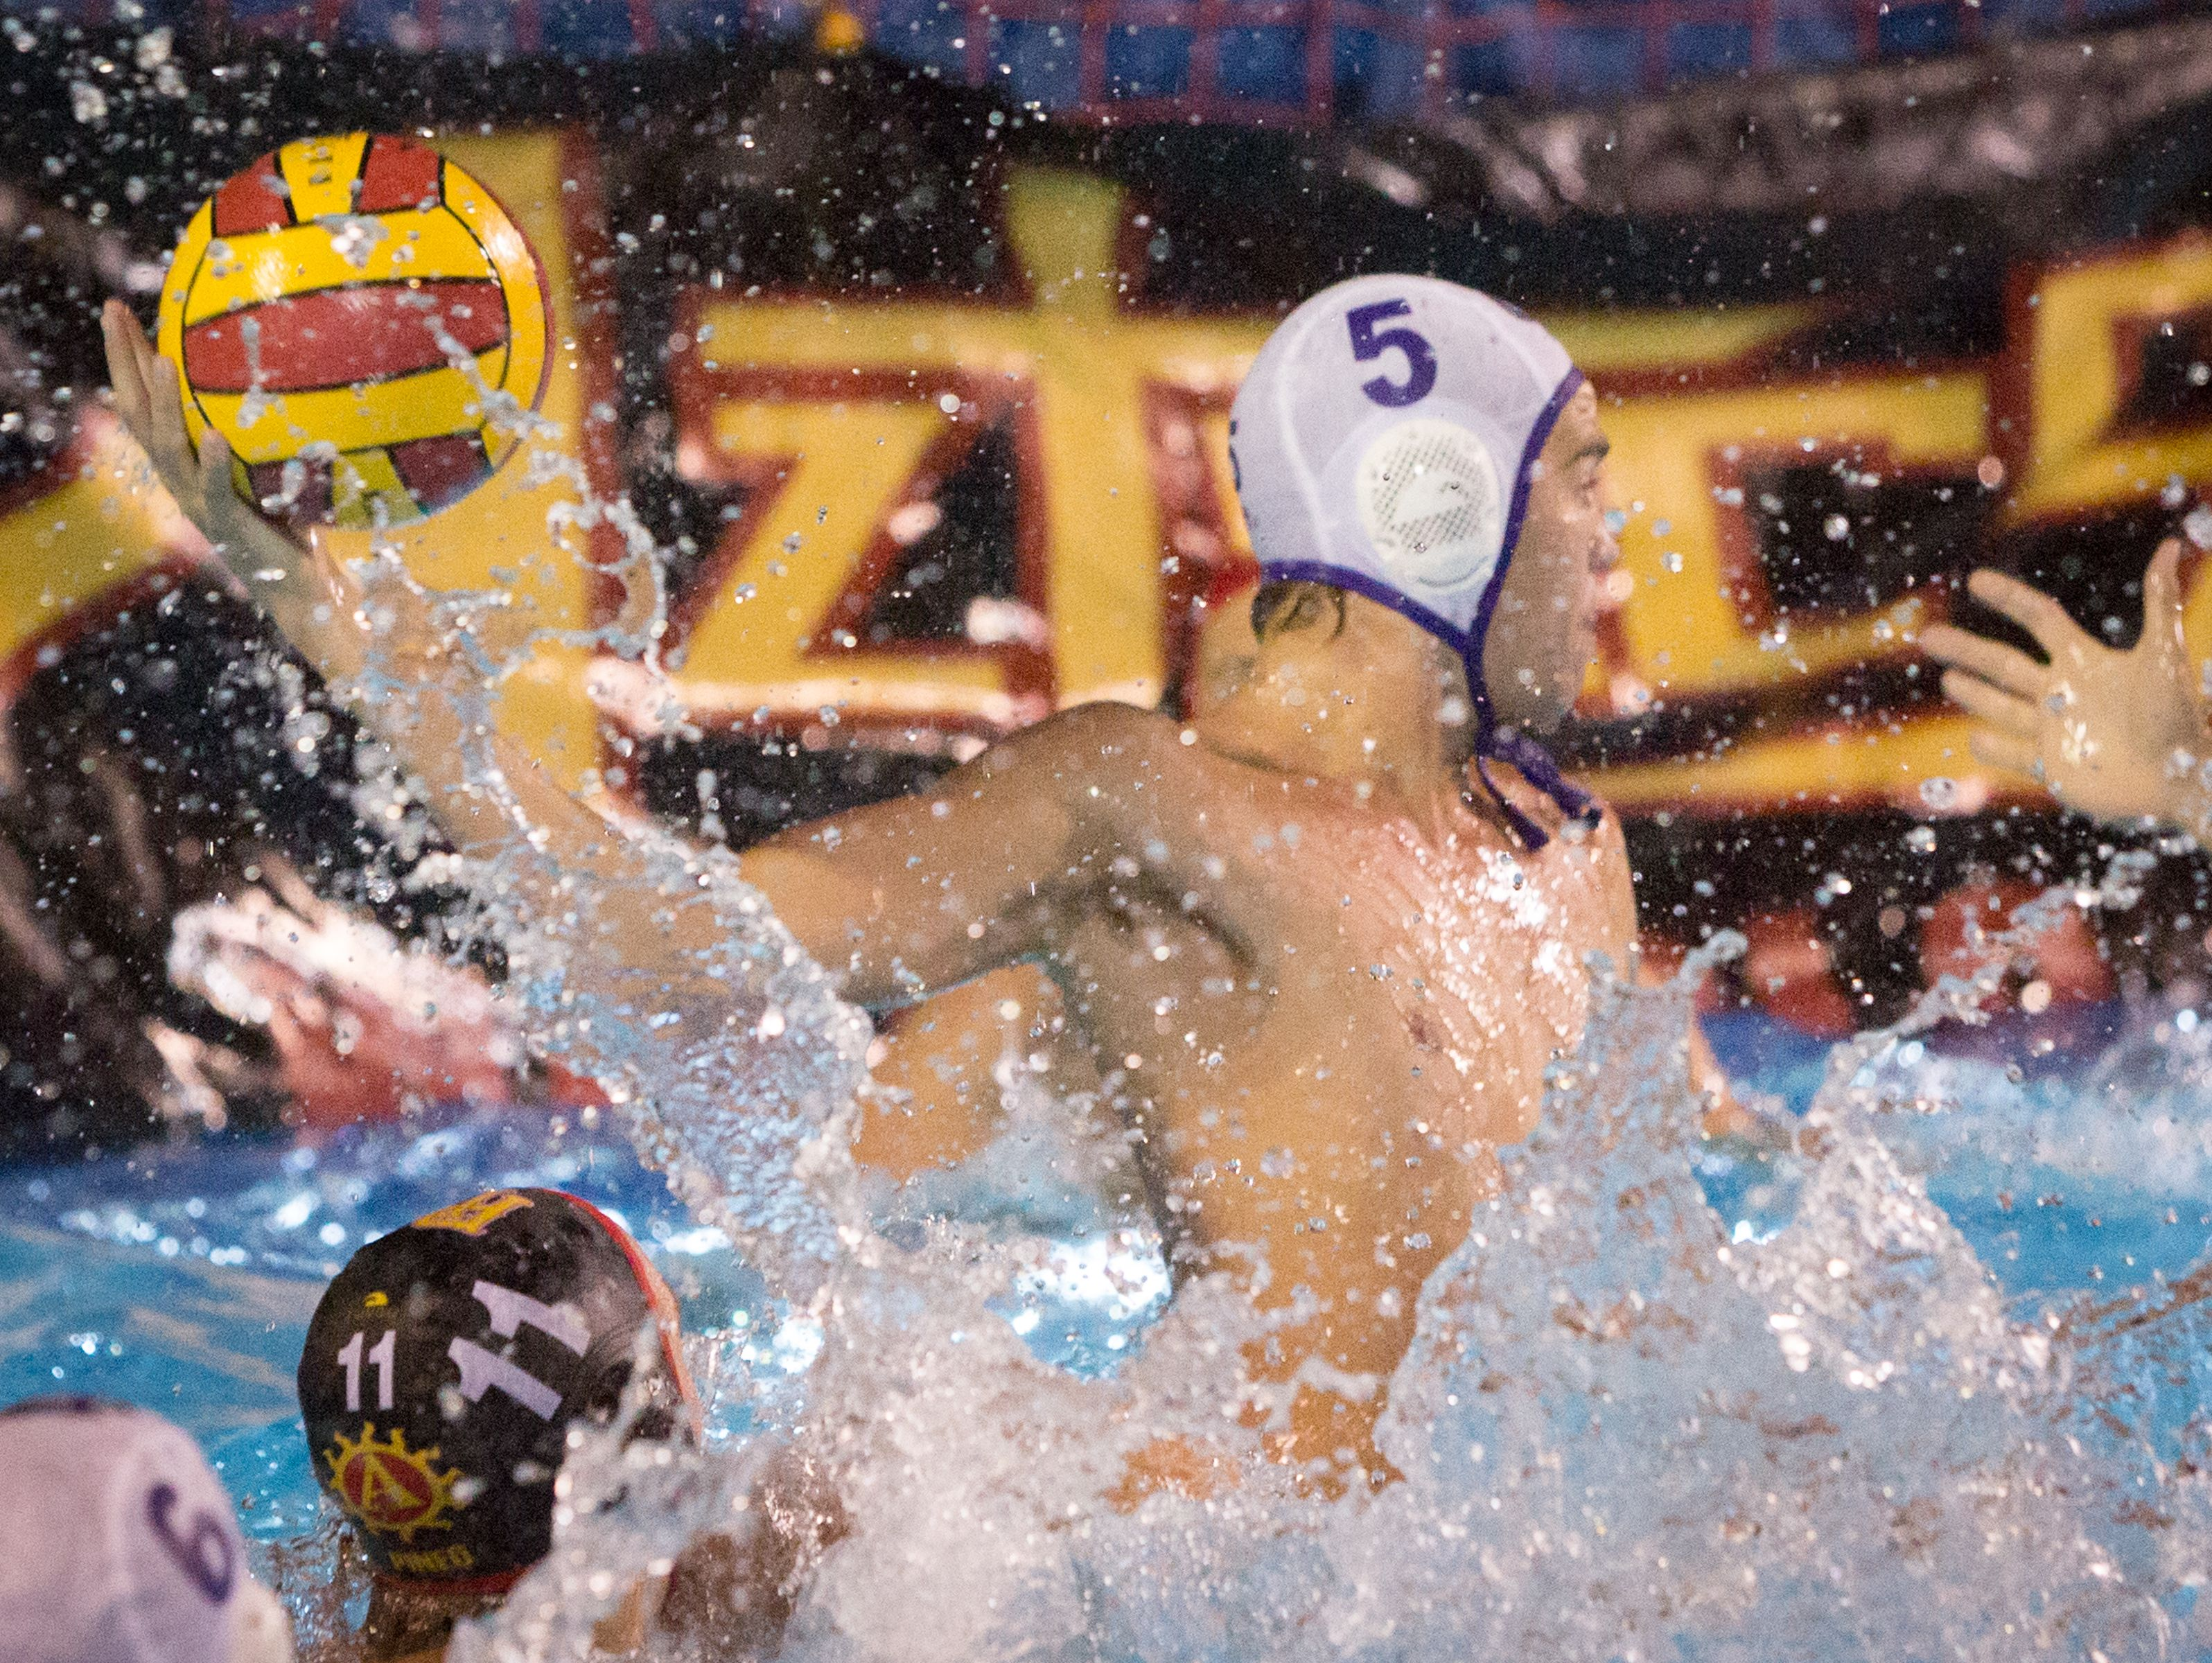 Rancho Cucamonga's Hunter Schoeller, who led both teams with 11 goals Tuesday, takes a shot in his team's 14-12 win over Palm Desert.